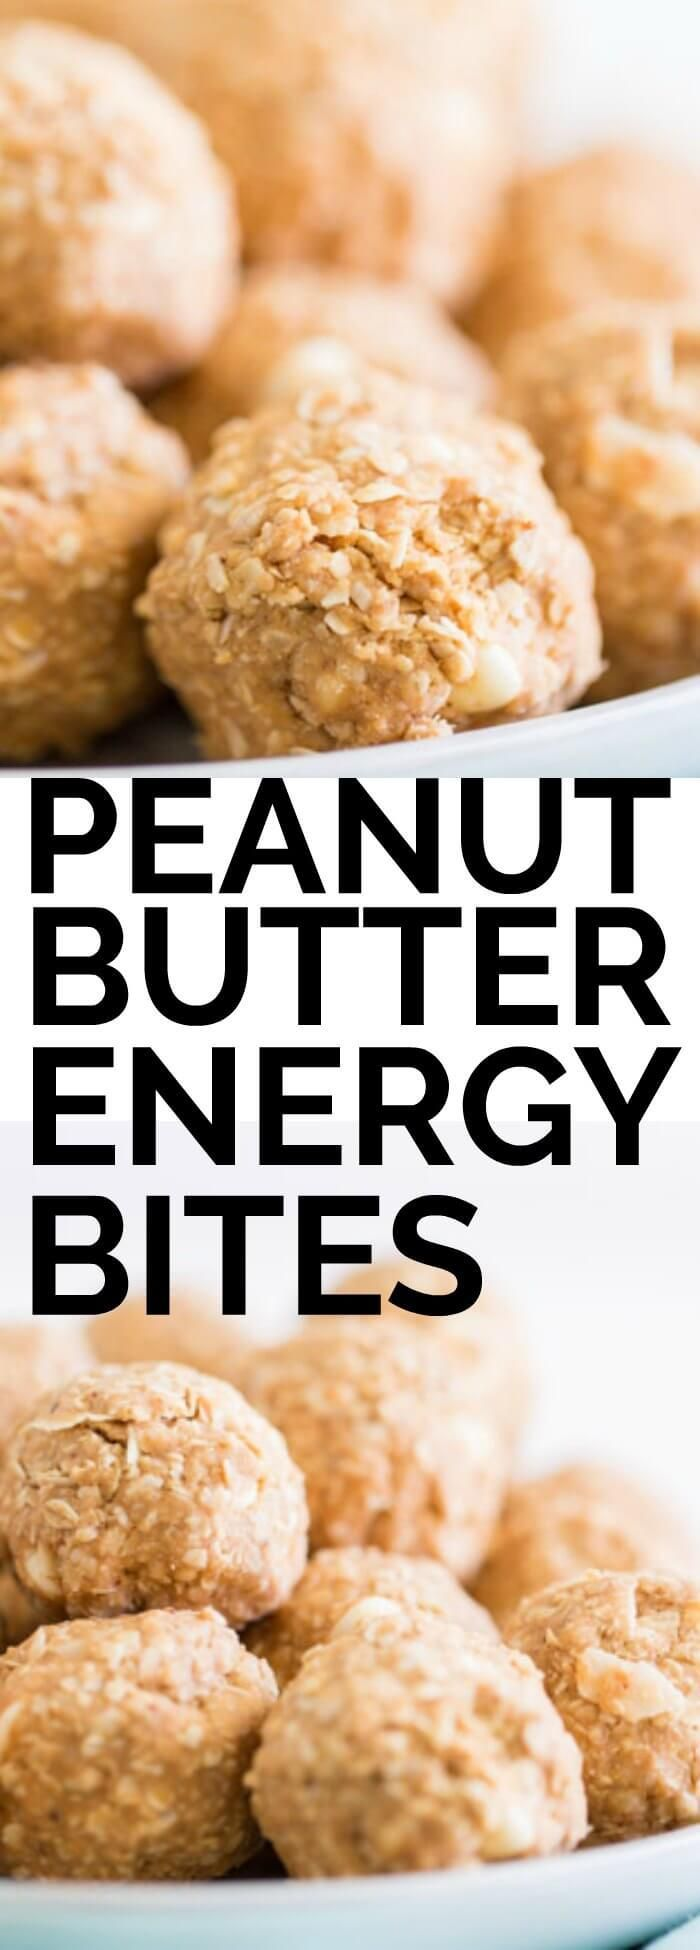 These peanut butter & white chocolate energy bites are the perfect post work out boost! #SlamDunkStyling #Publix #ad